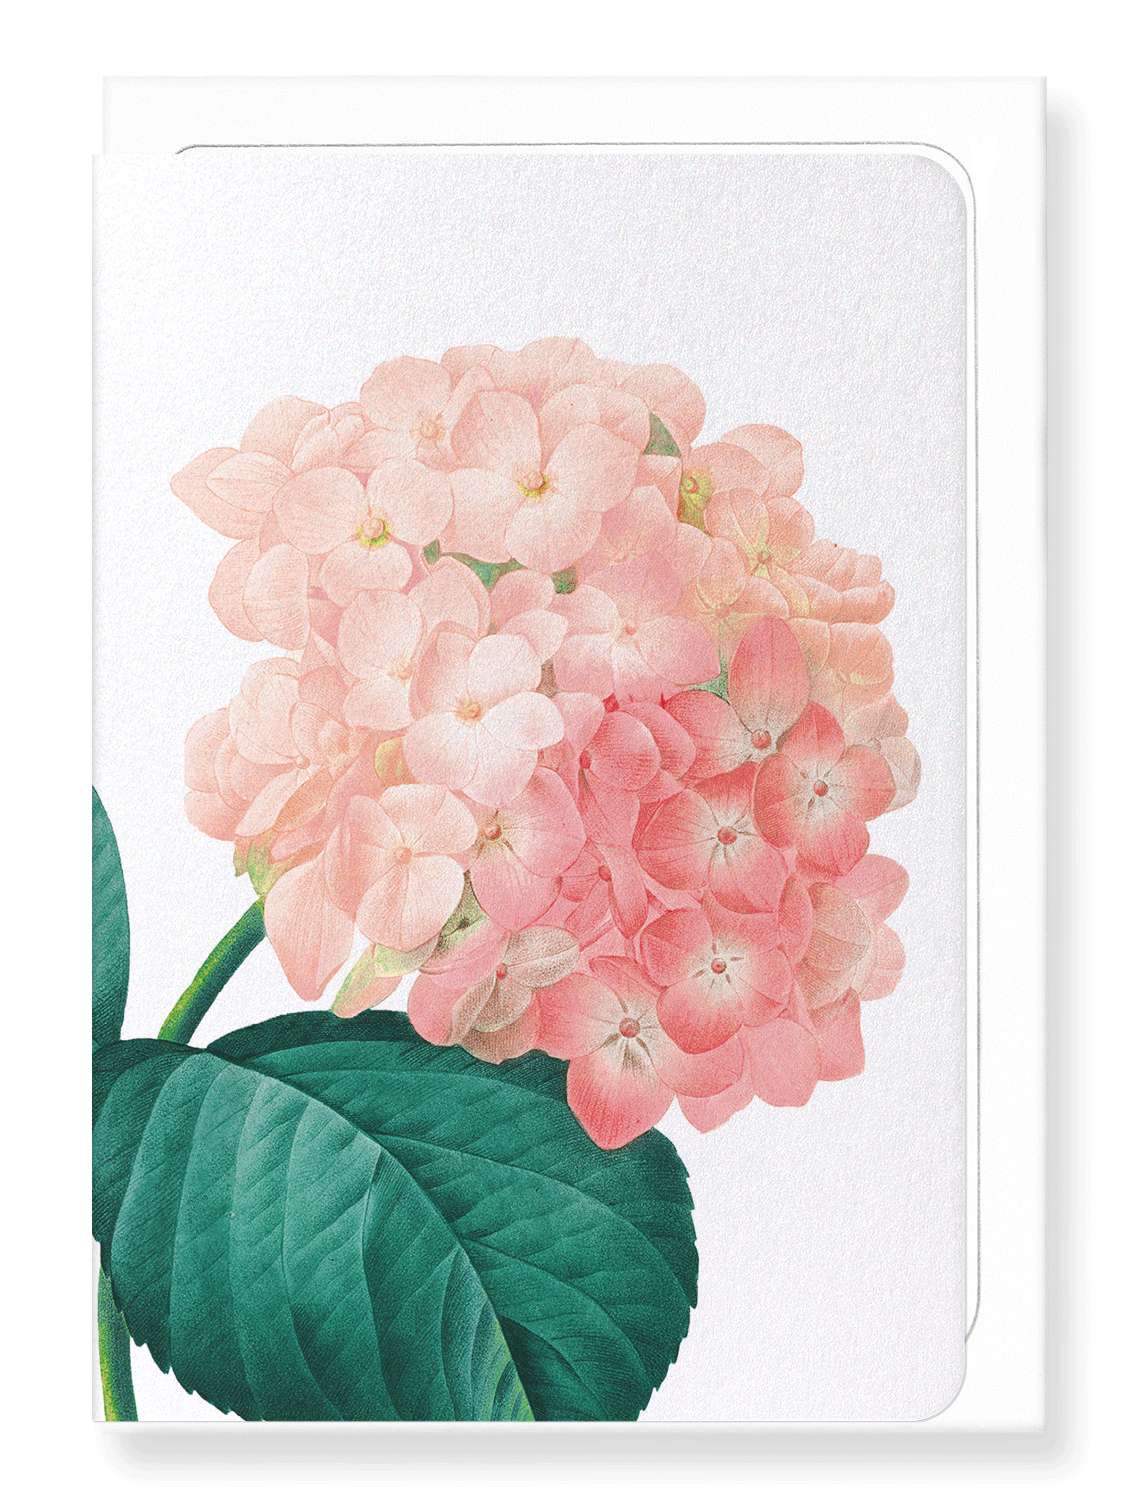 Ezen Designs - Hortensia (detail) - Greeting Card - Front